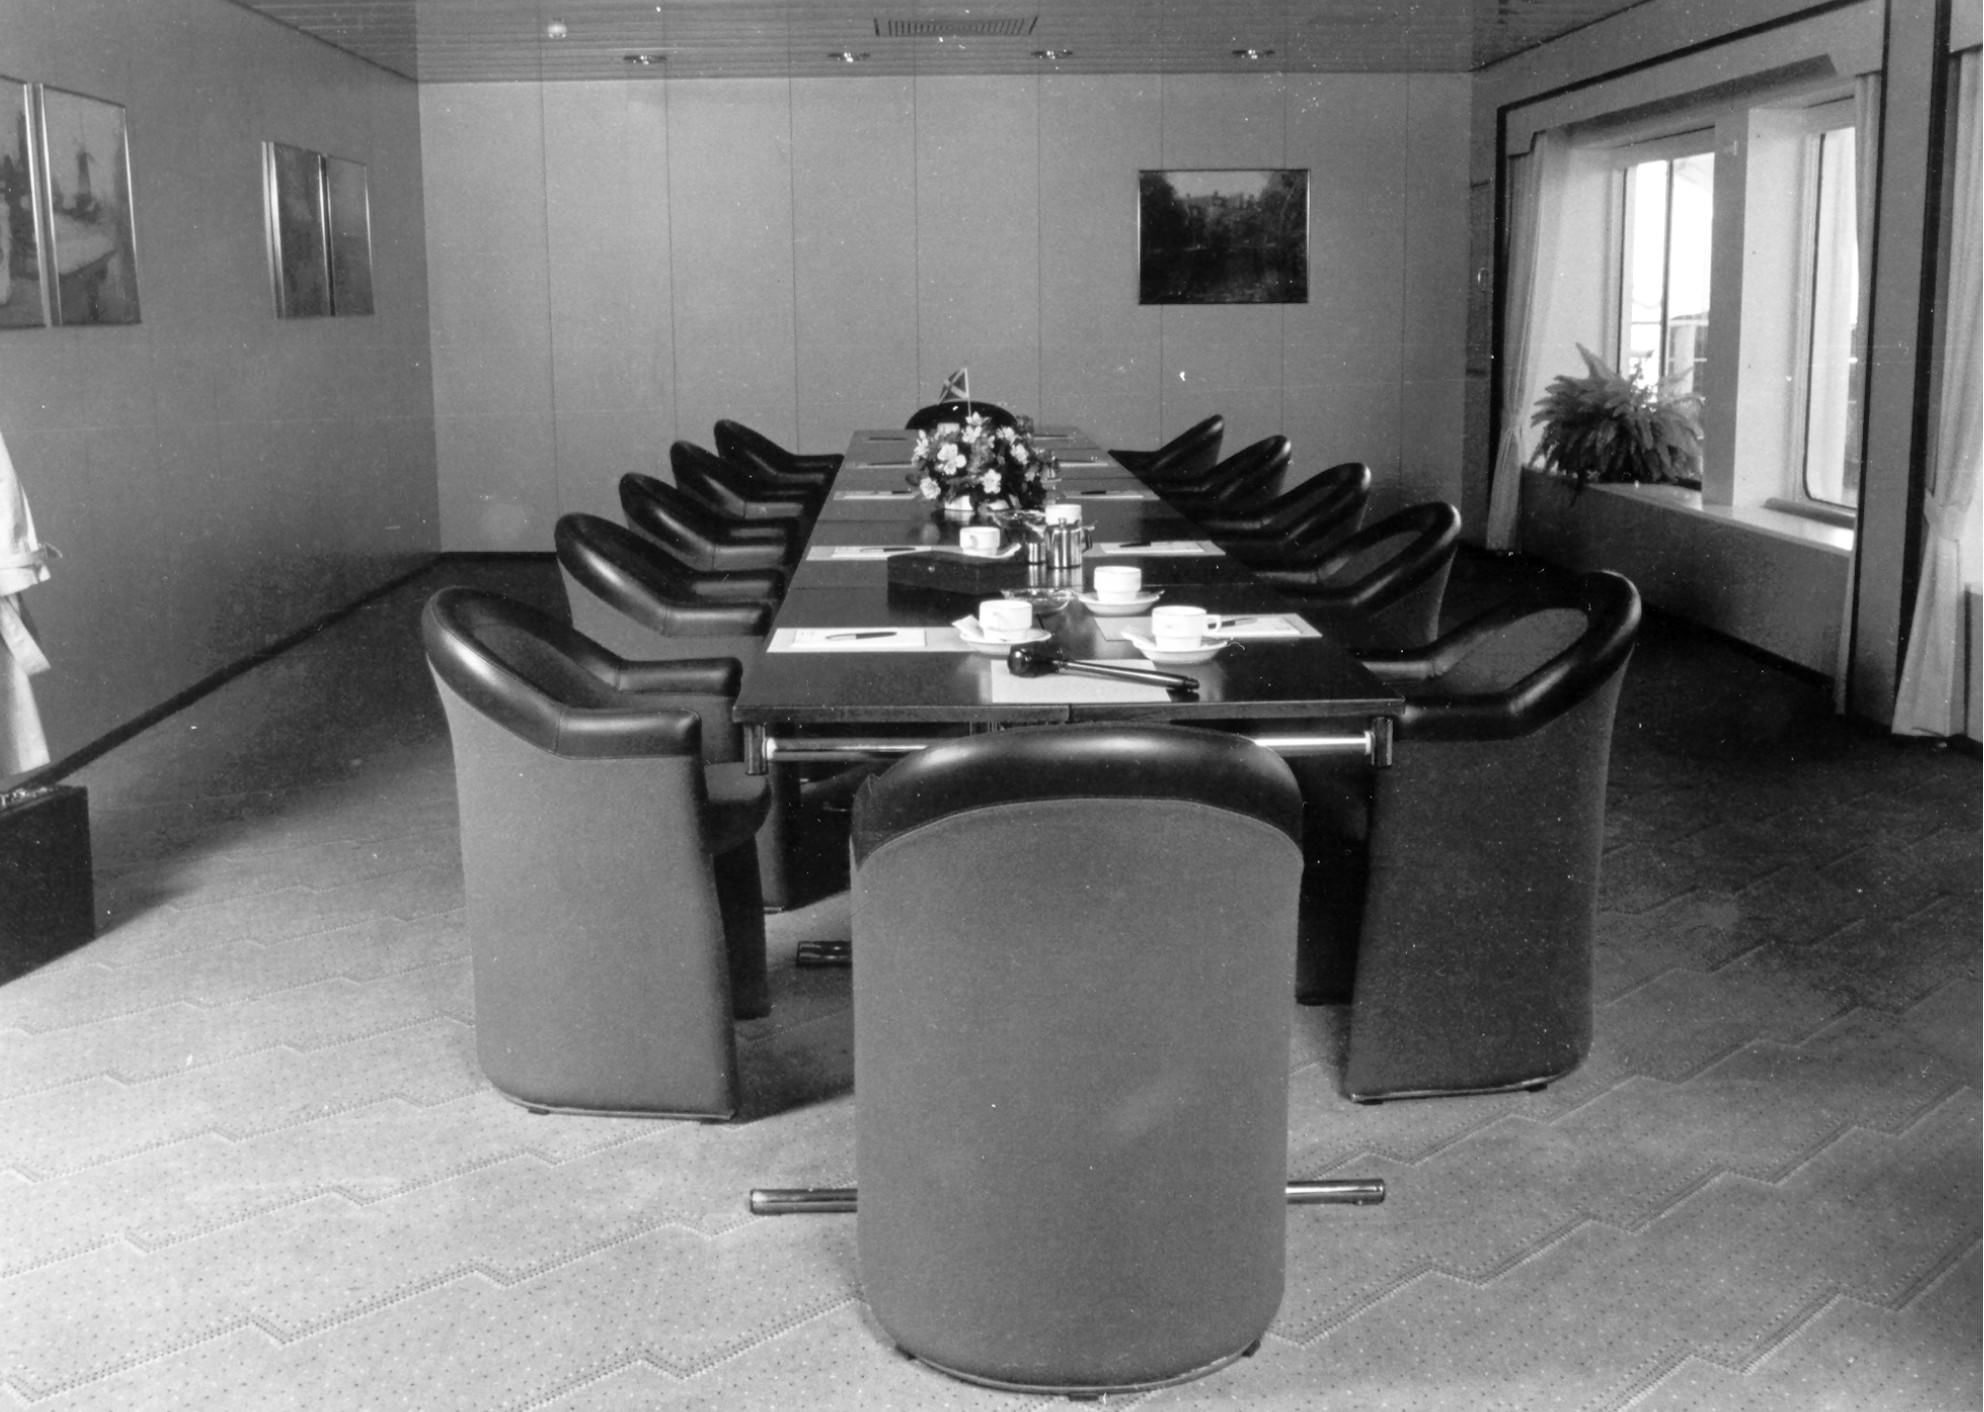 KONINGIN BEATRIX 1986-20 Conference room 2 in 1986 kopie